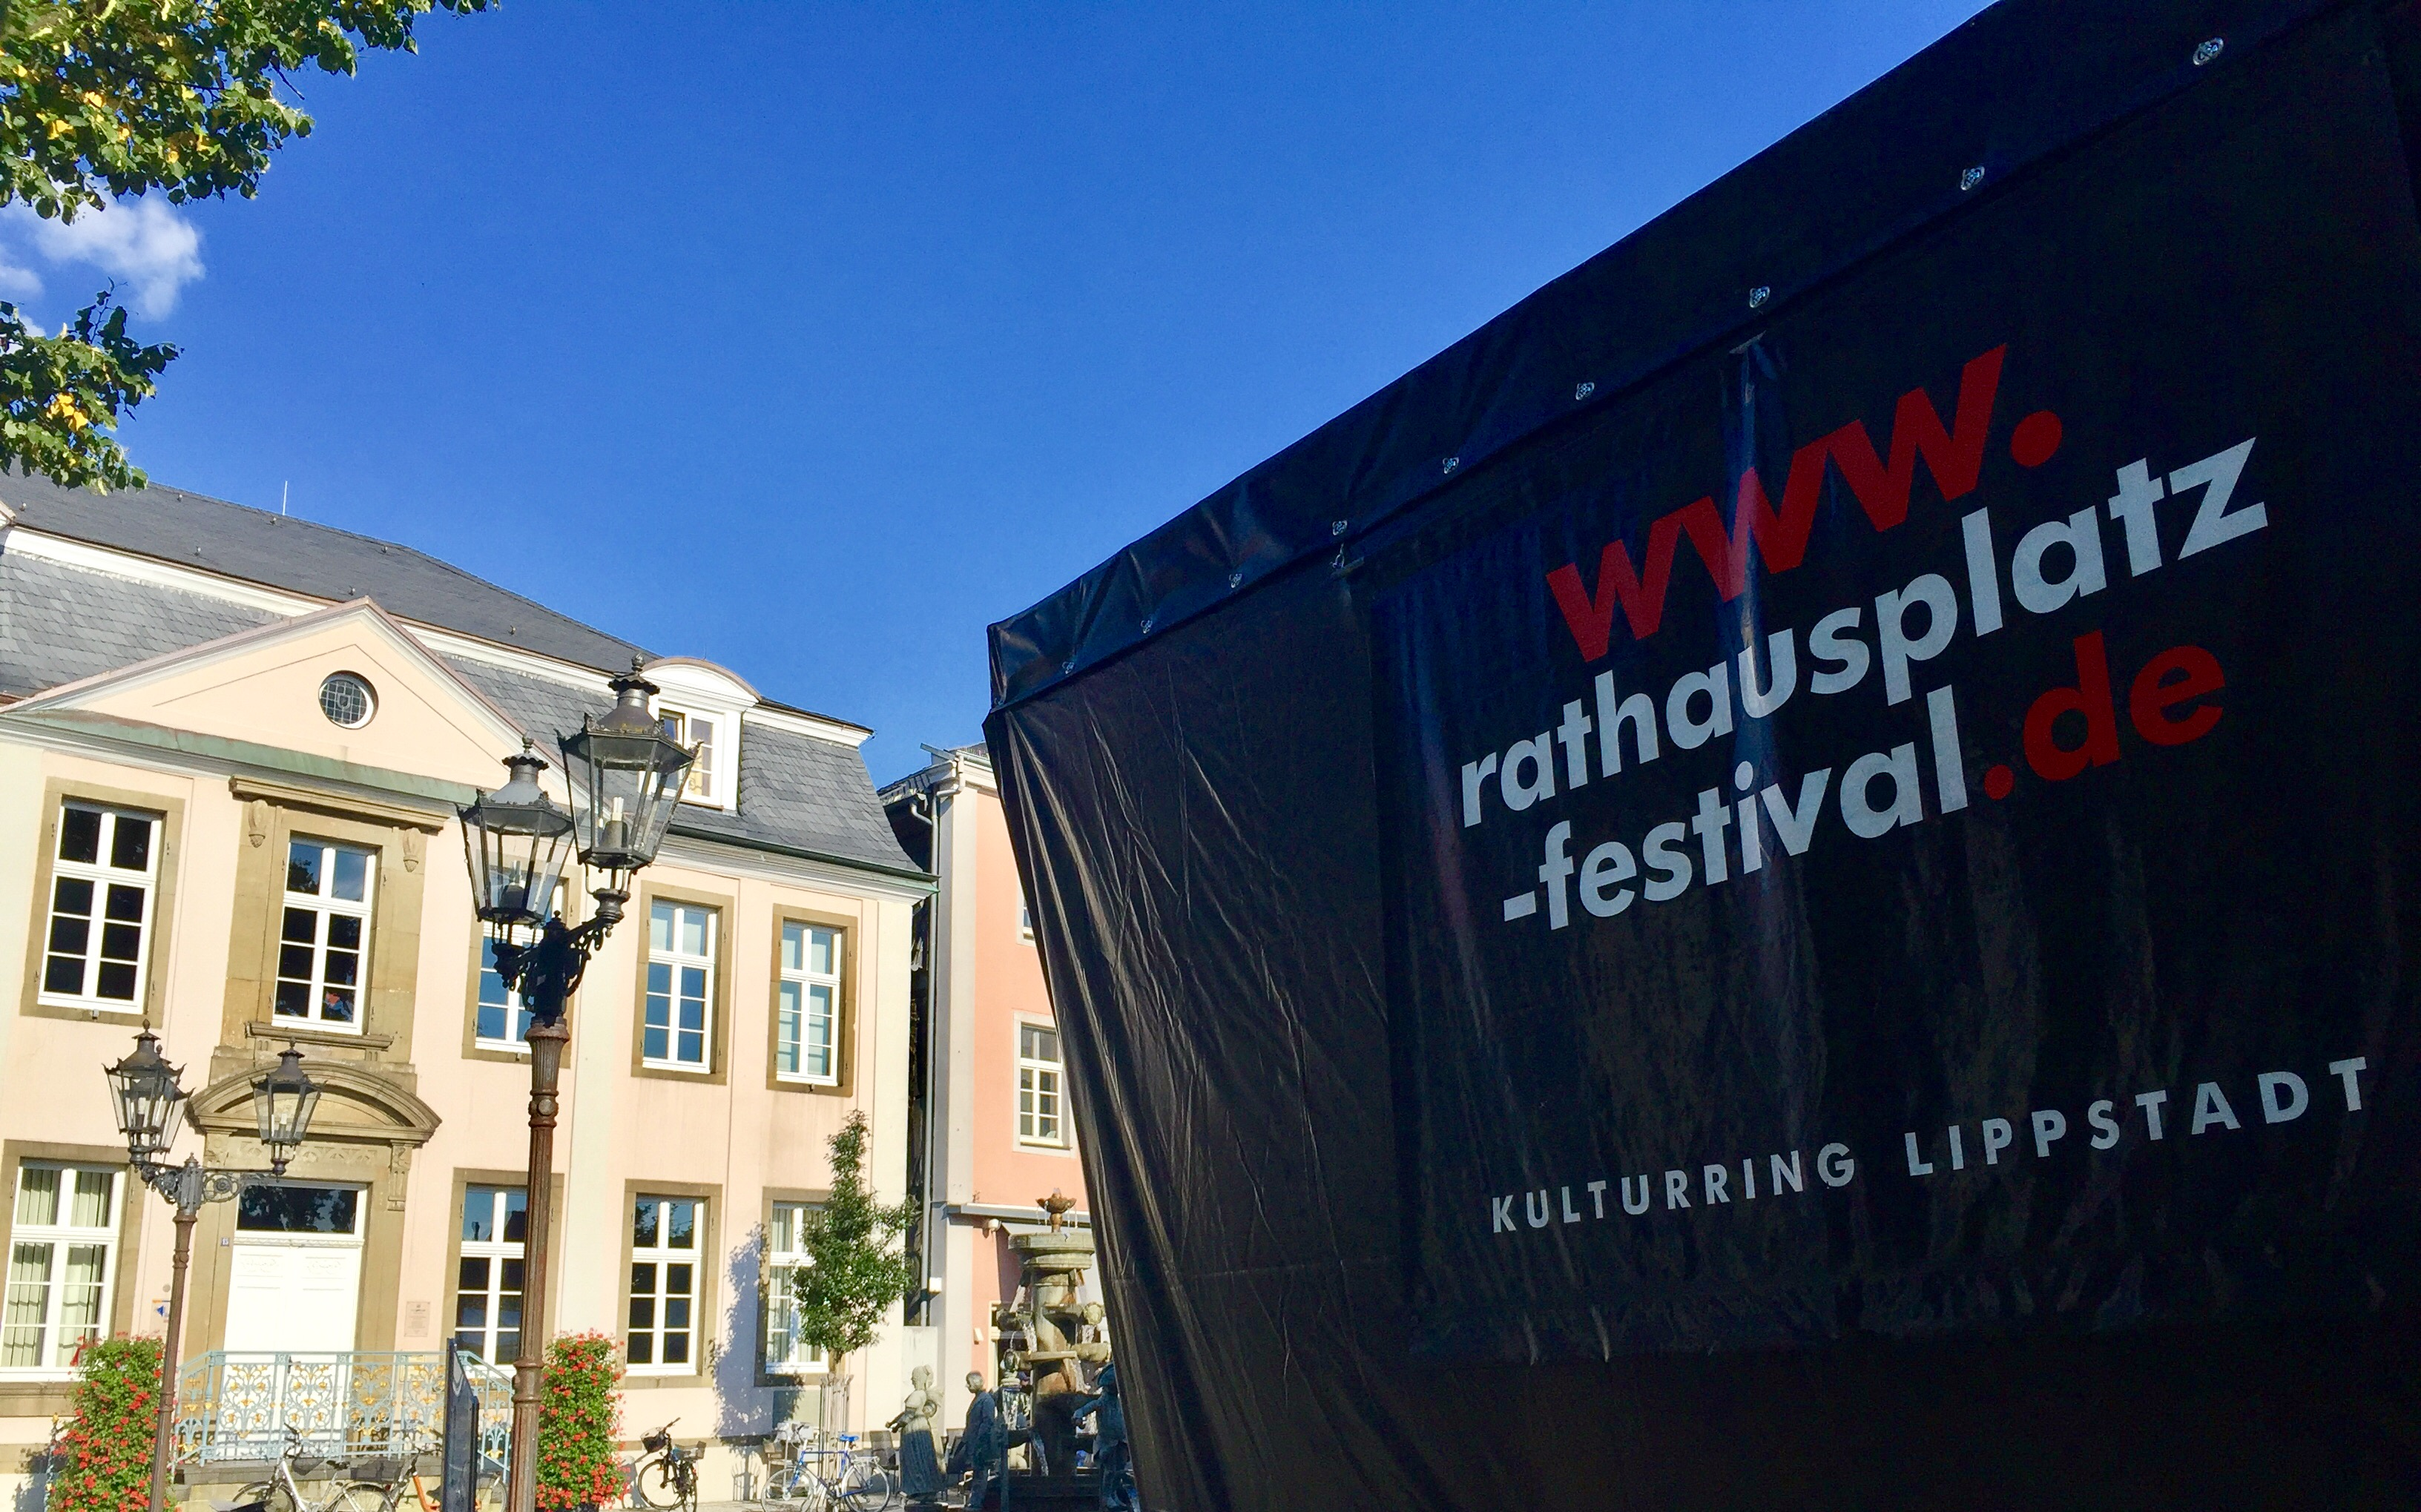 Rathausplatz-Festival 2018 in Lippstadt - Hotel Pension & Appartement Haus Stallmeister